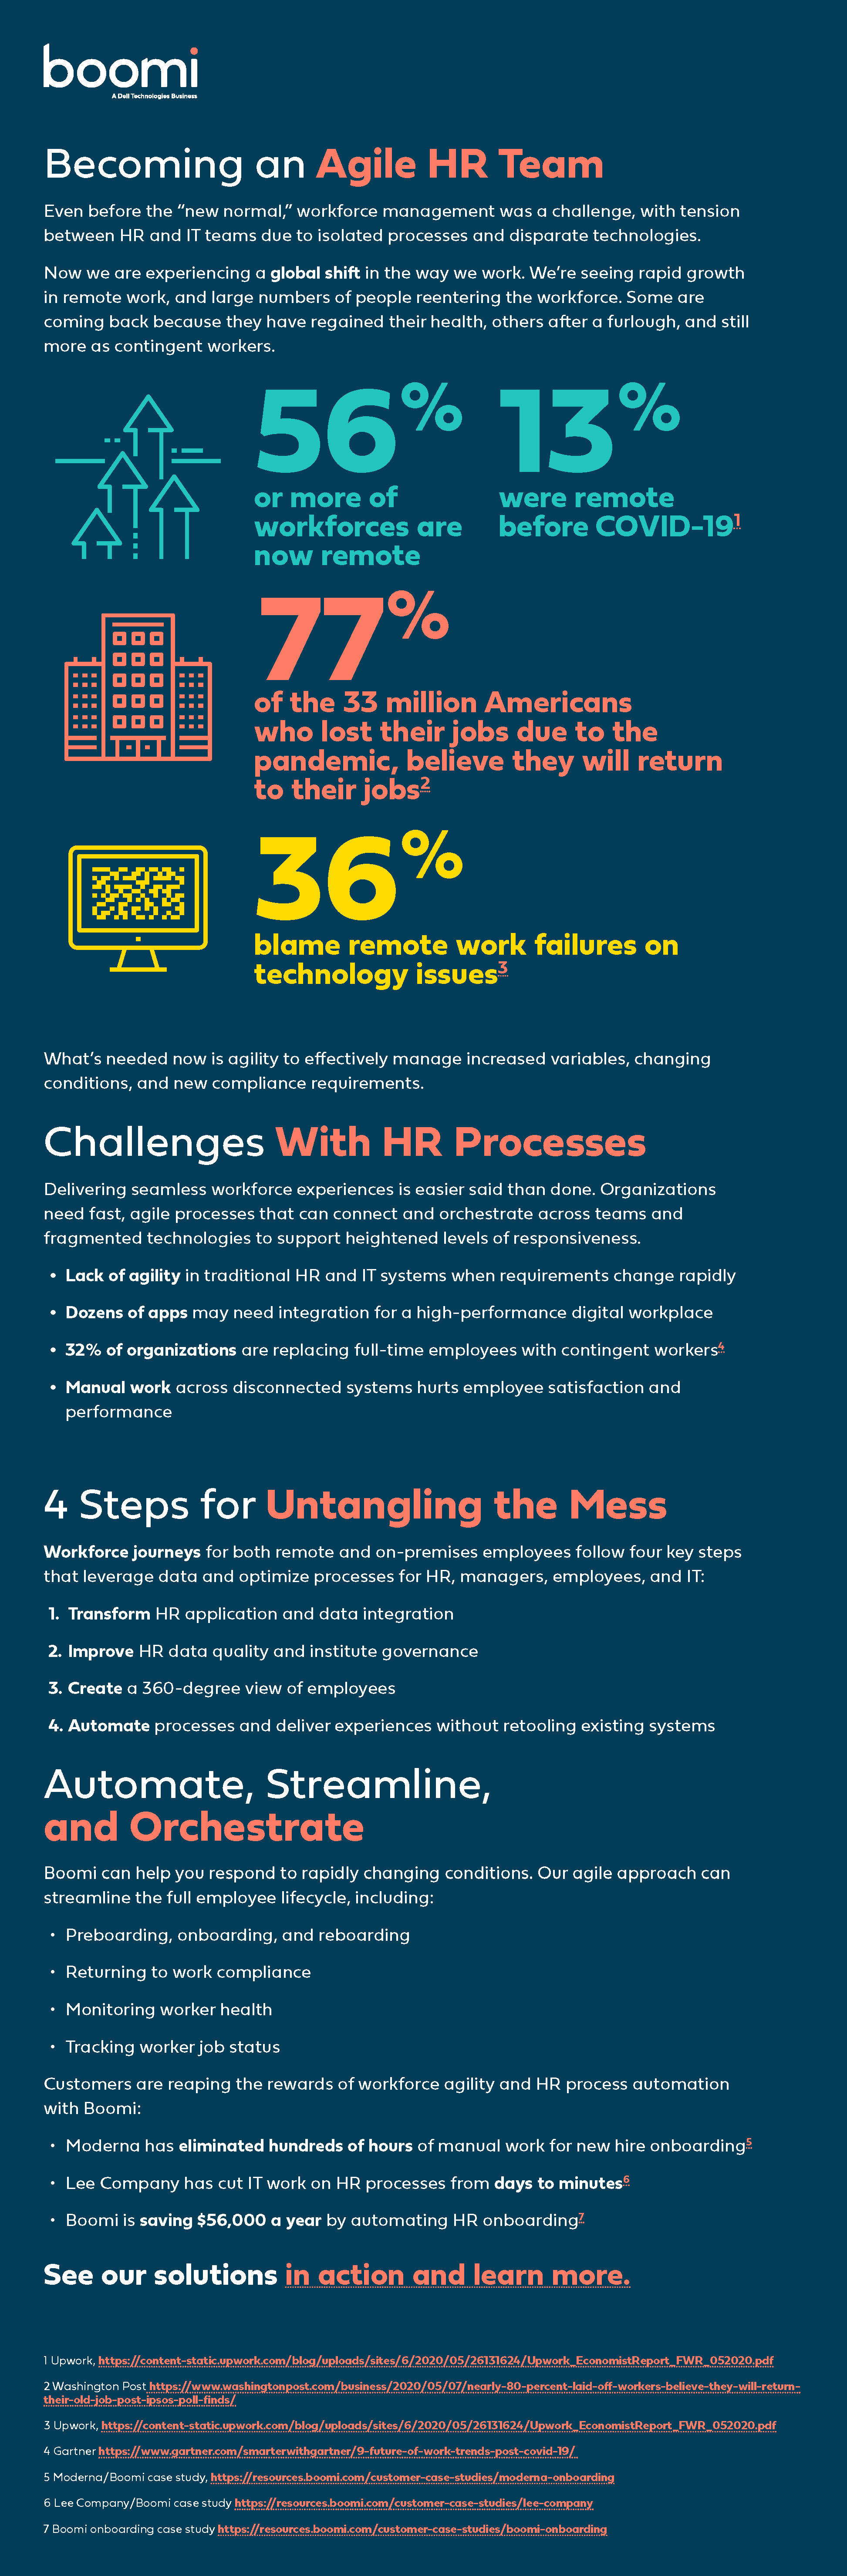 [Boomi Infographic] Becoming an Agile HR Team